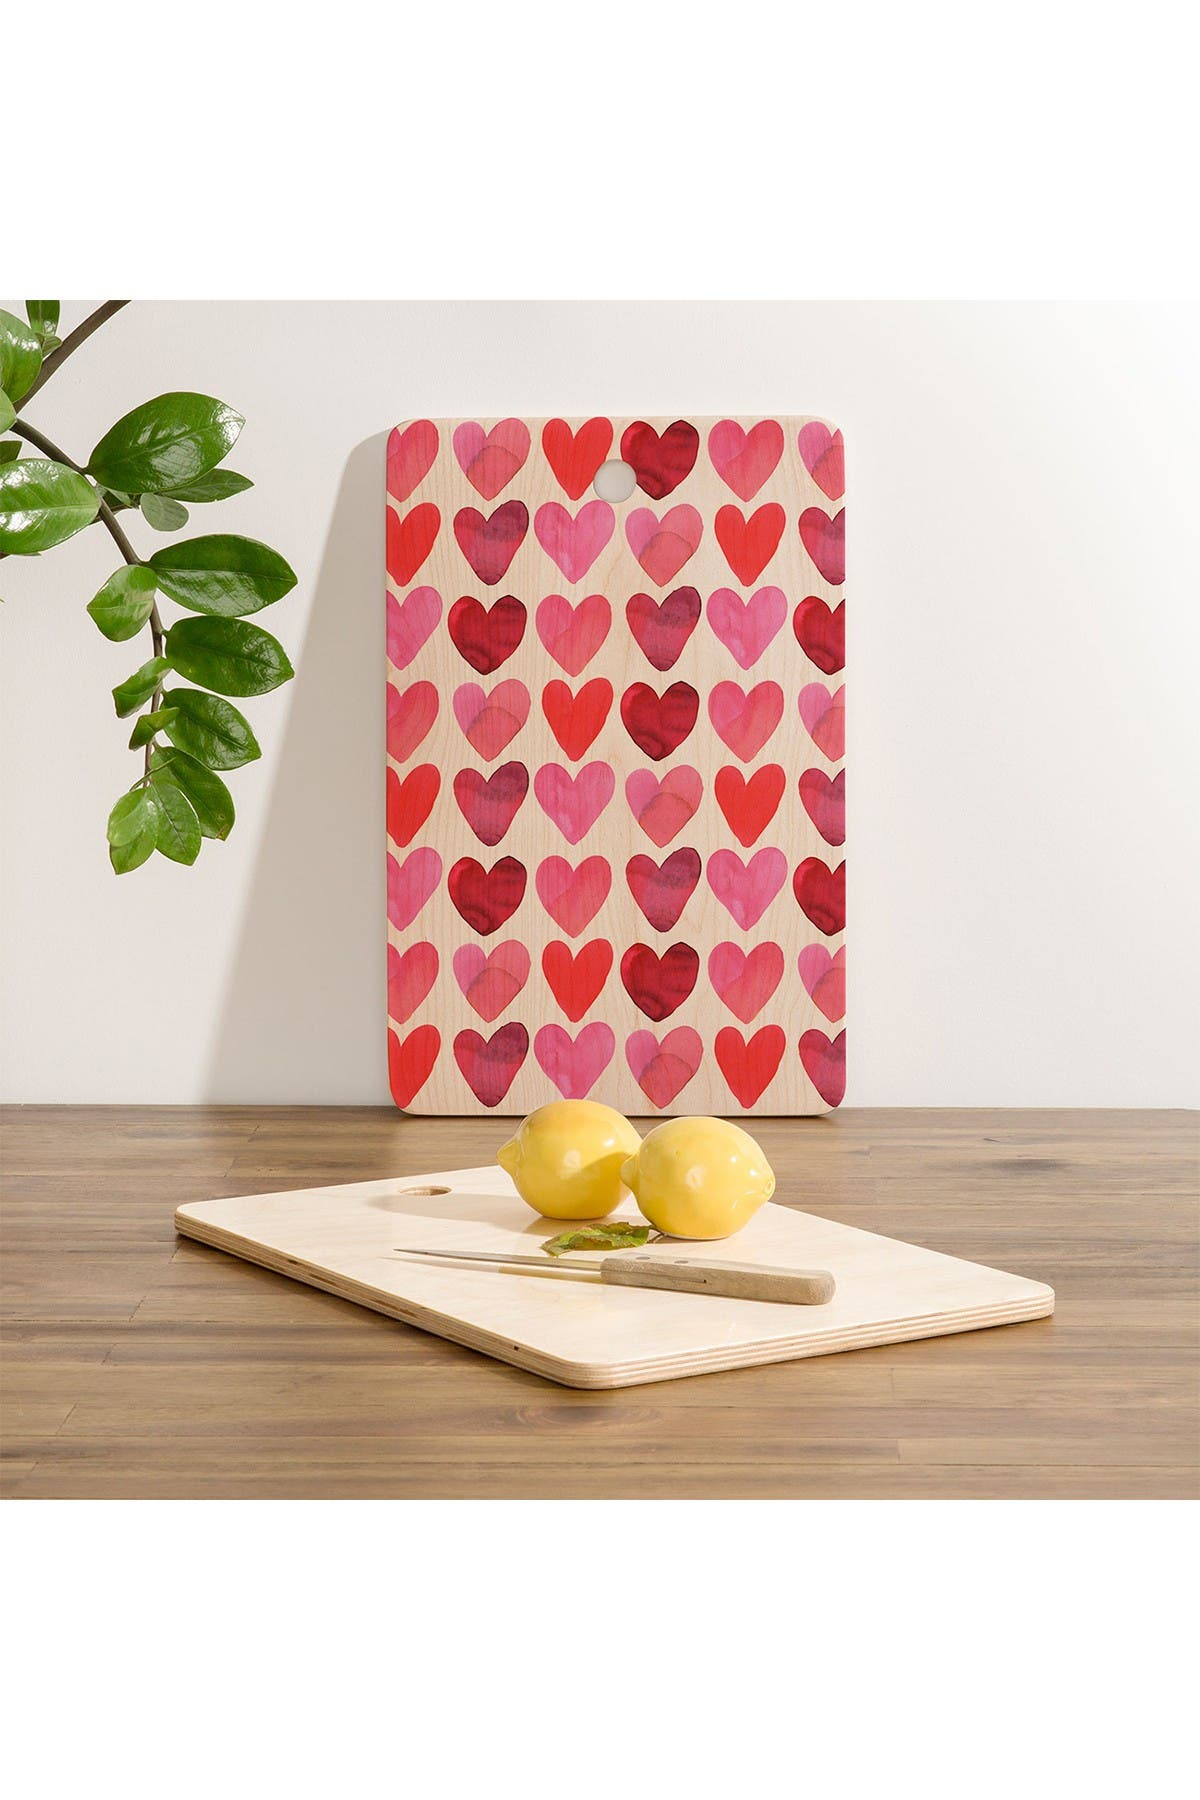 Image of Deny Designs Amy Sia Heart Watercolor Rectangle Cutting Board